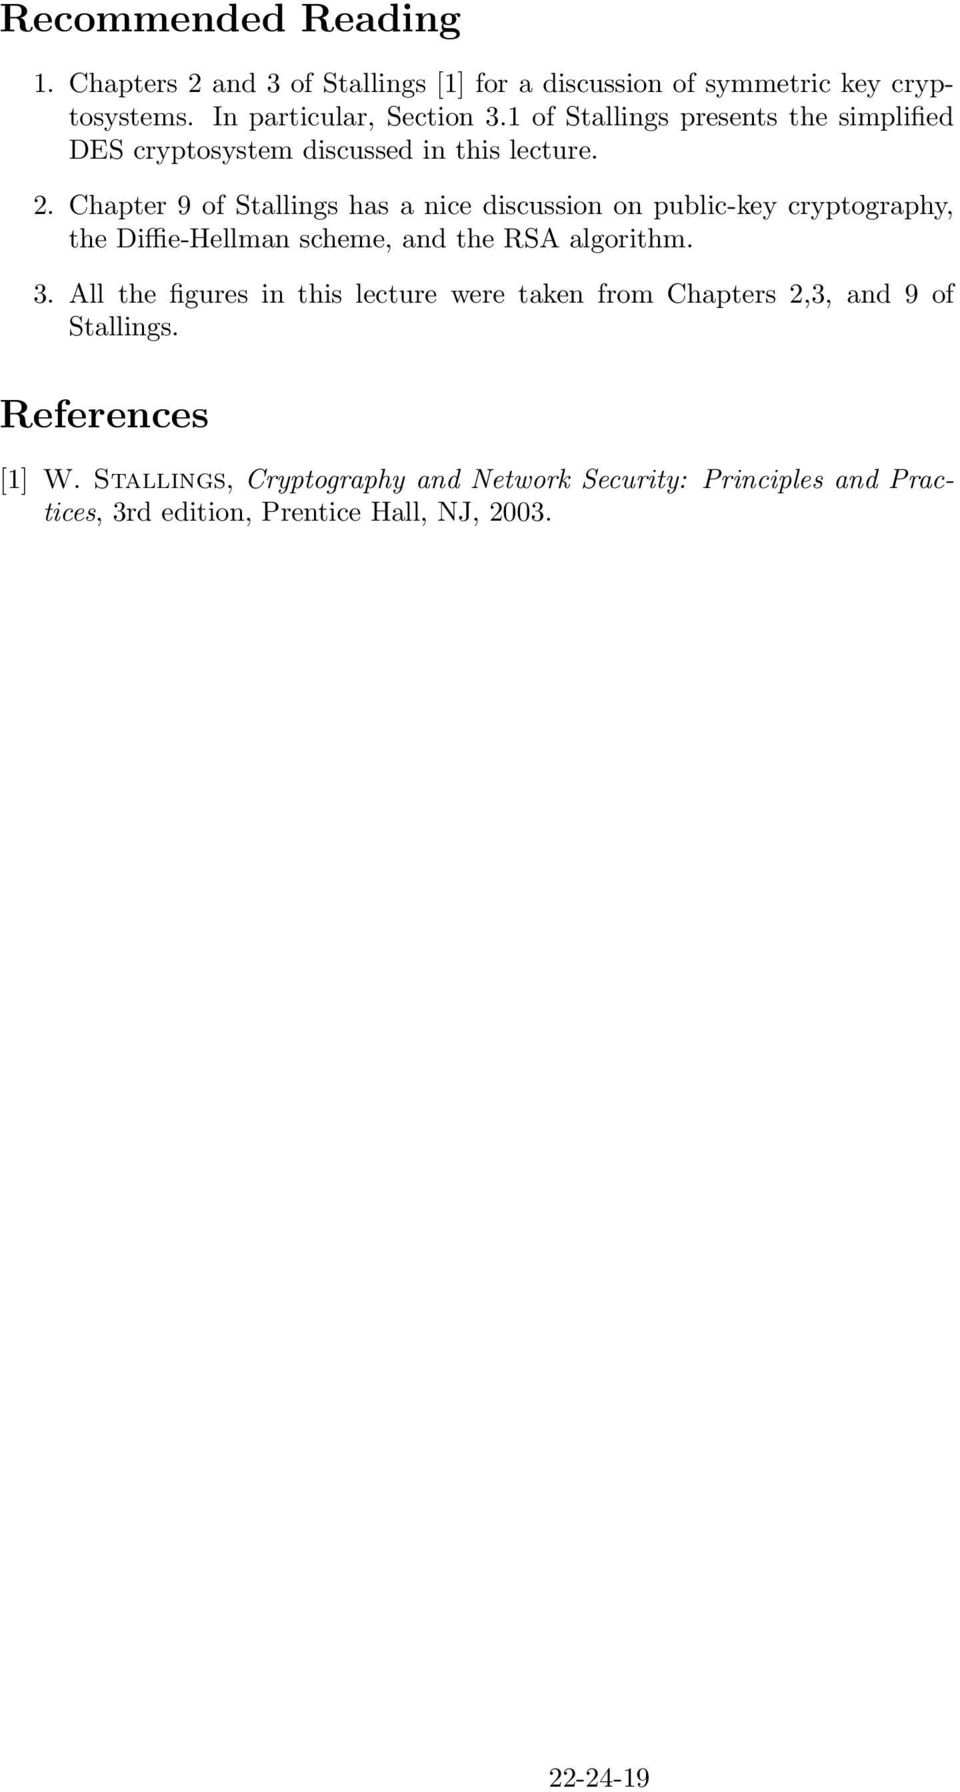 Chapter 9 of Stallings has a nice discussion on public-key cryptography, the Diffie-Hellman scheme, and the RSA algorithm. 3.